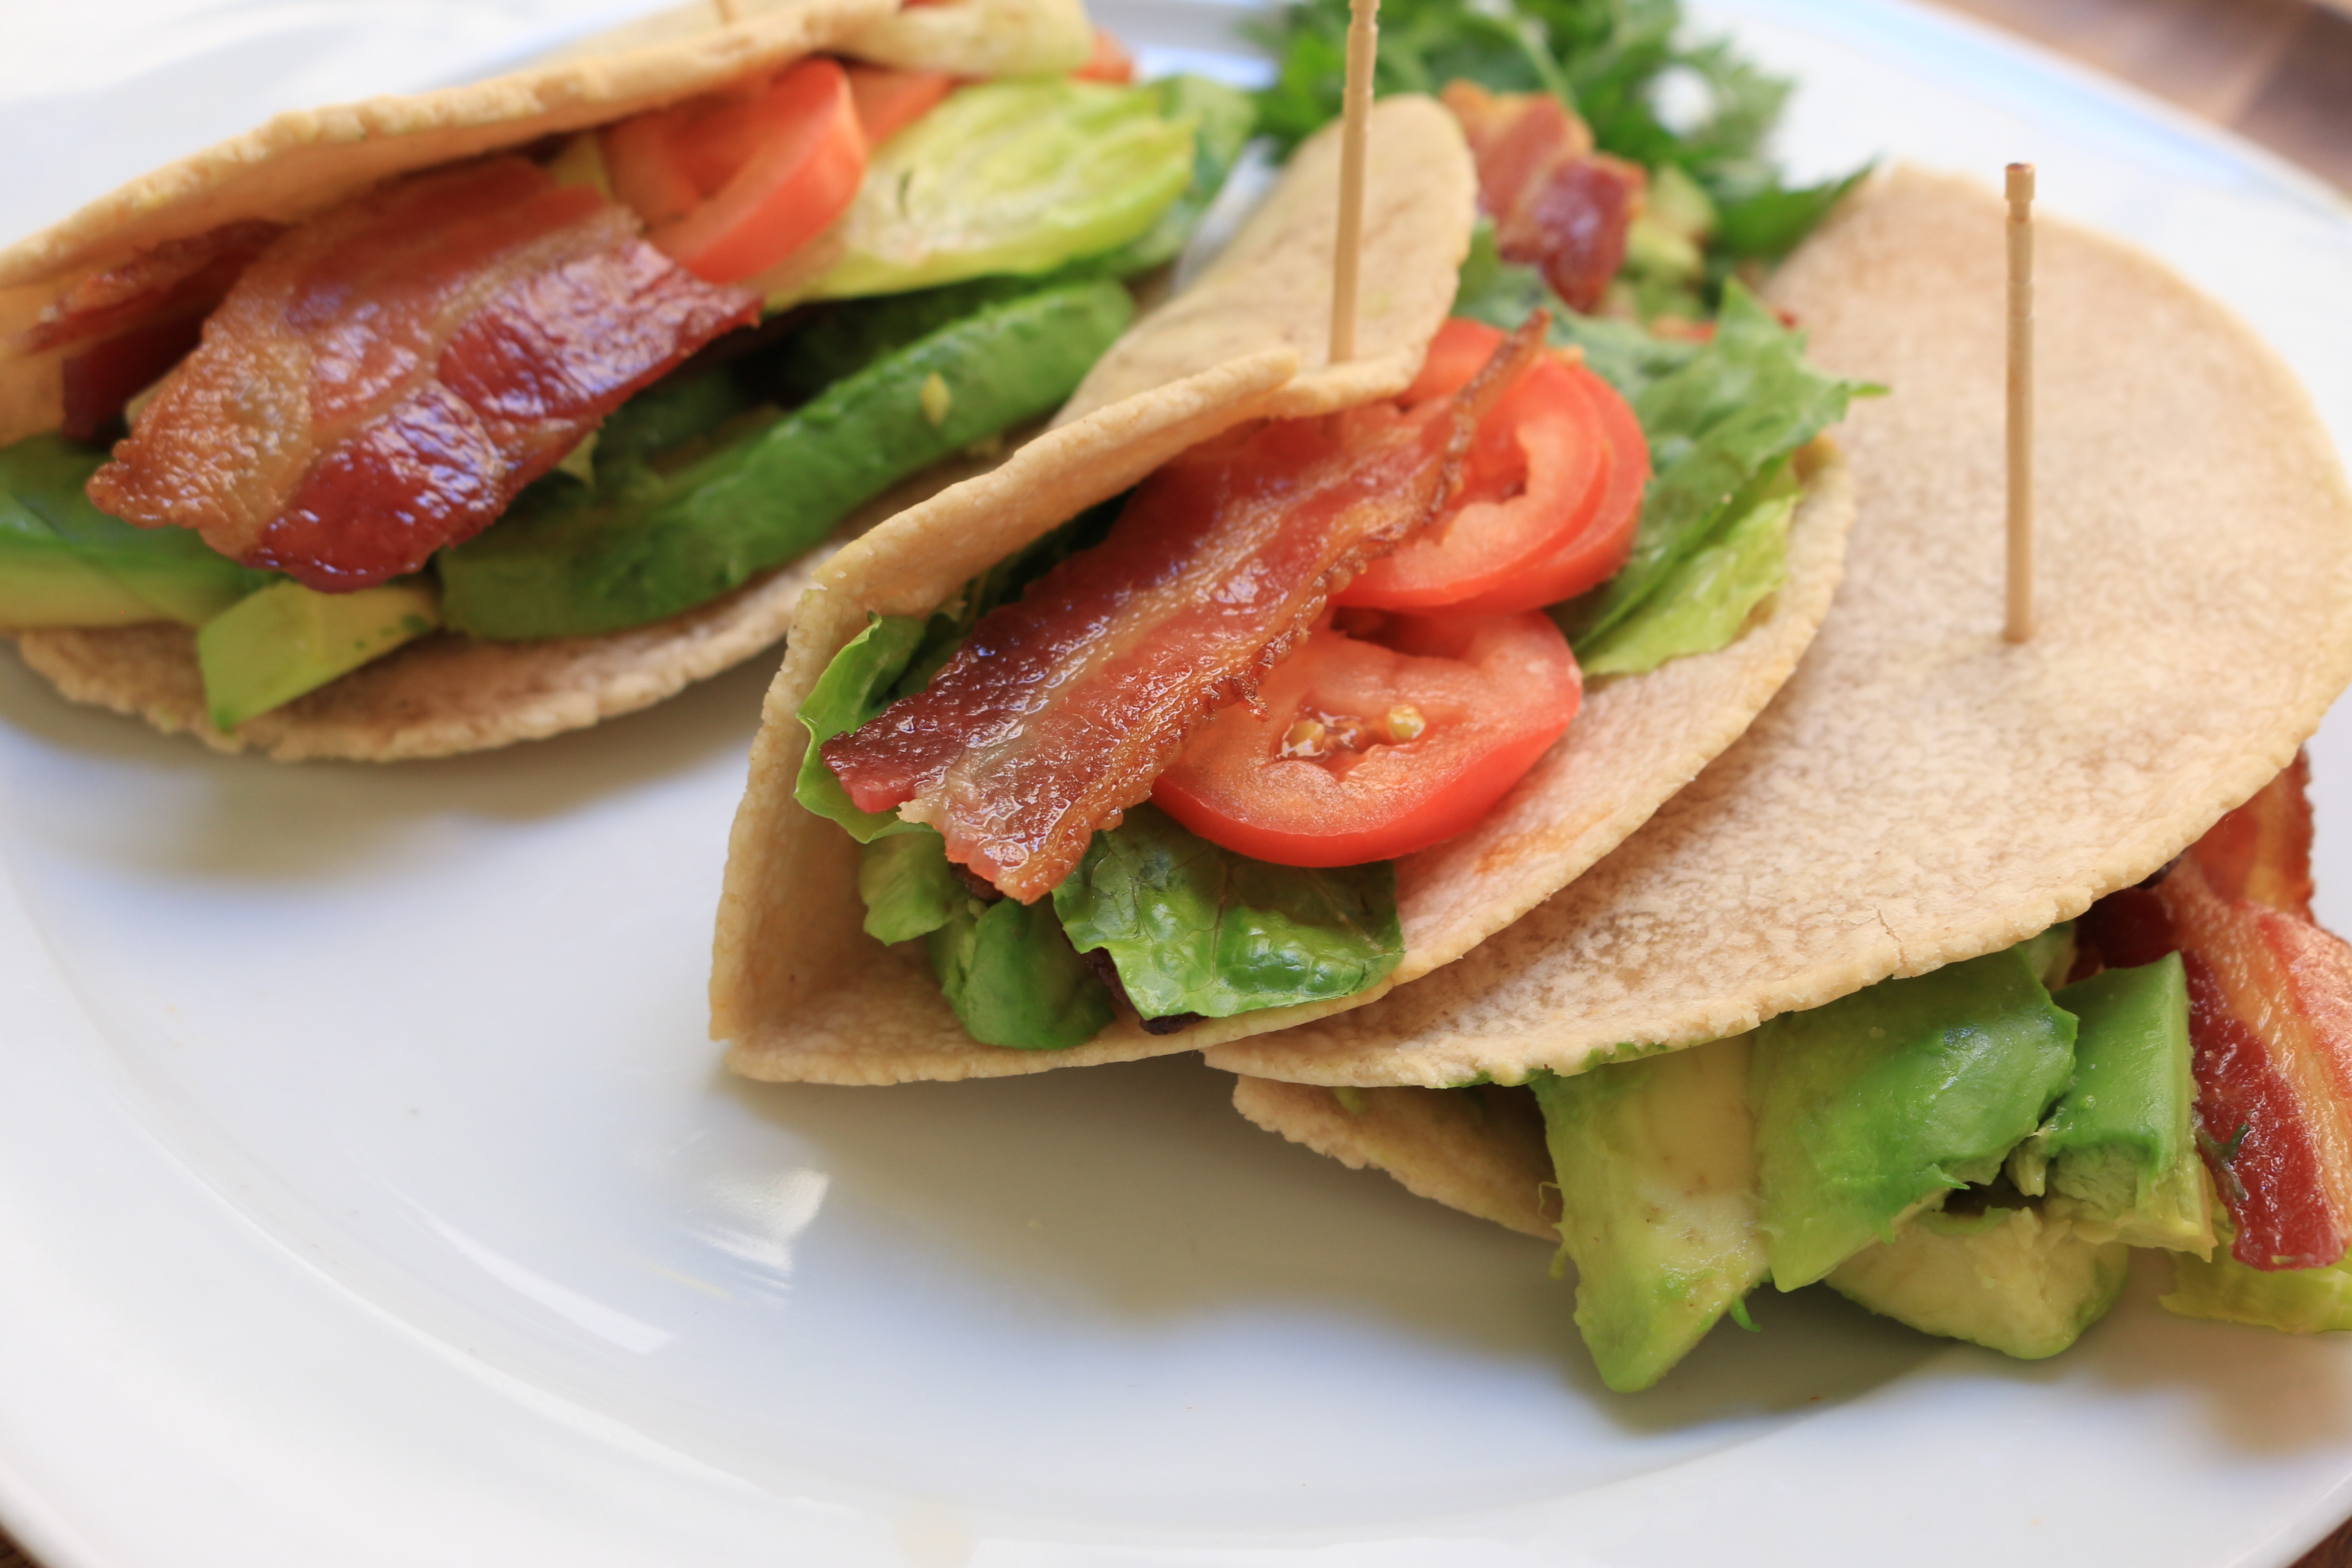 Tasty and delicious, our paleo BLT wrap is a great way to get more bacon in your diet. Oh, and veggies too.